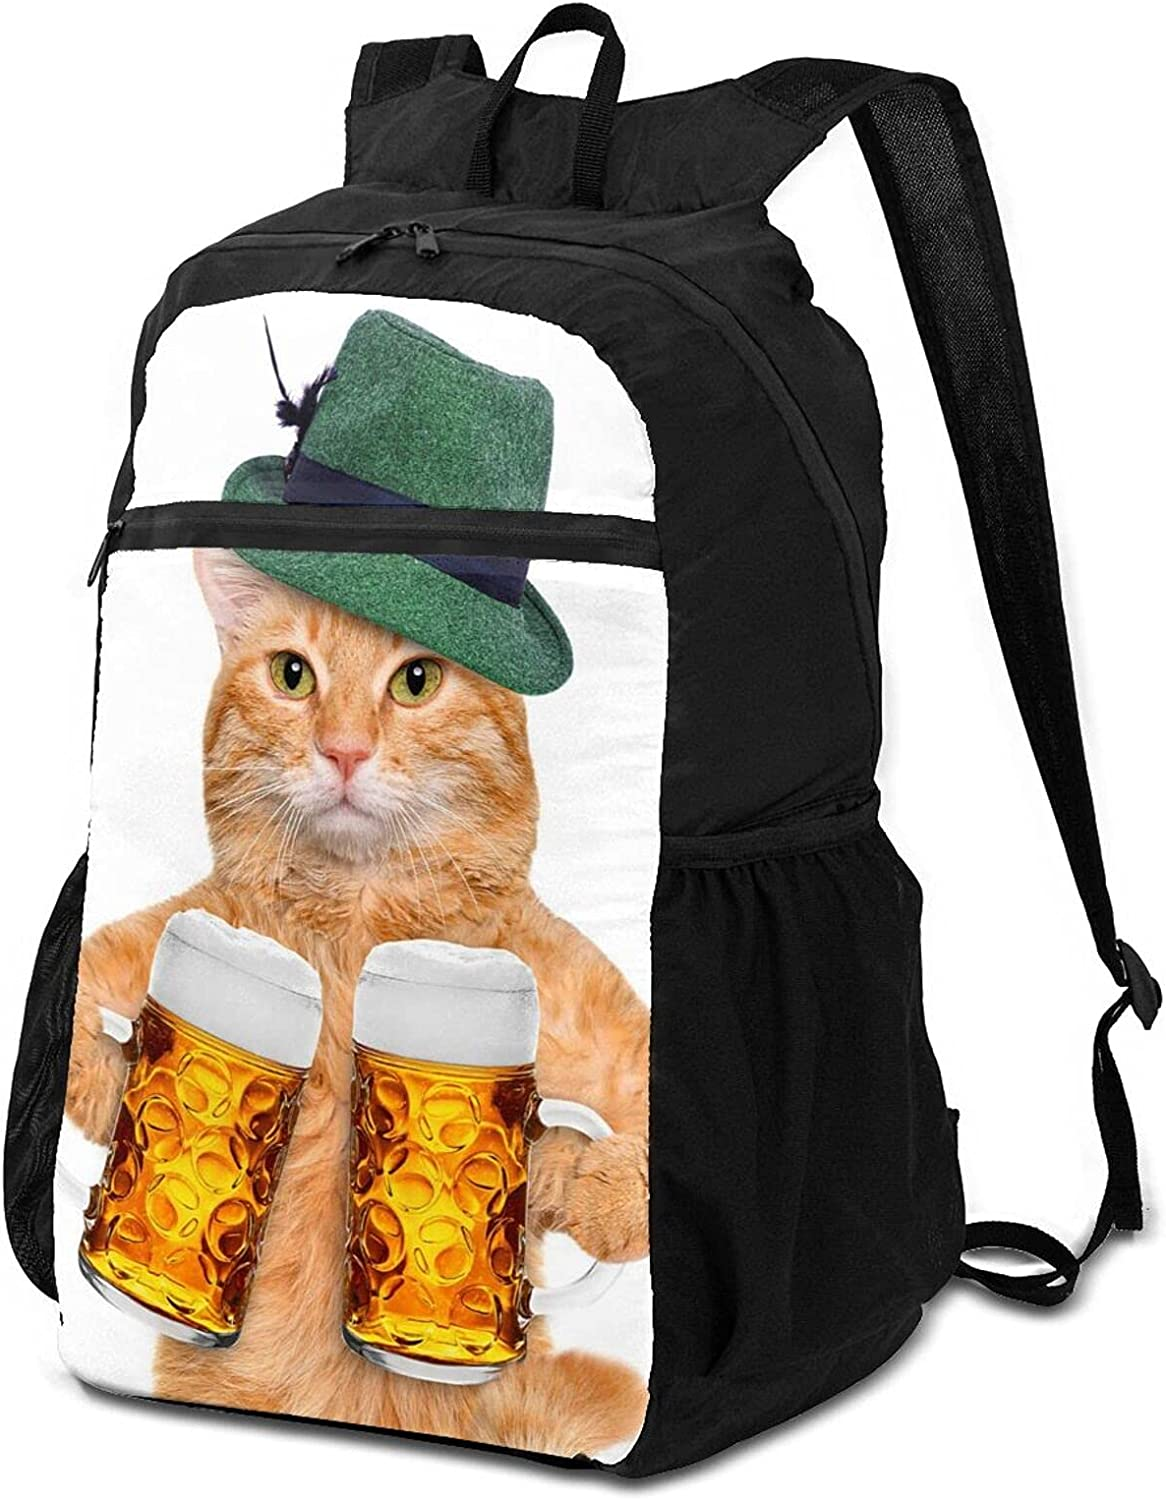 Cool Cat Max 75% OFF With Hat And Beer for Wom Packable Max 76% OFF Backpack Lightweight